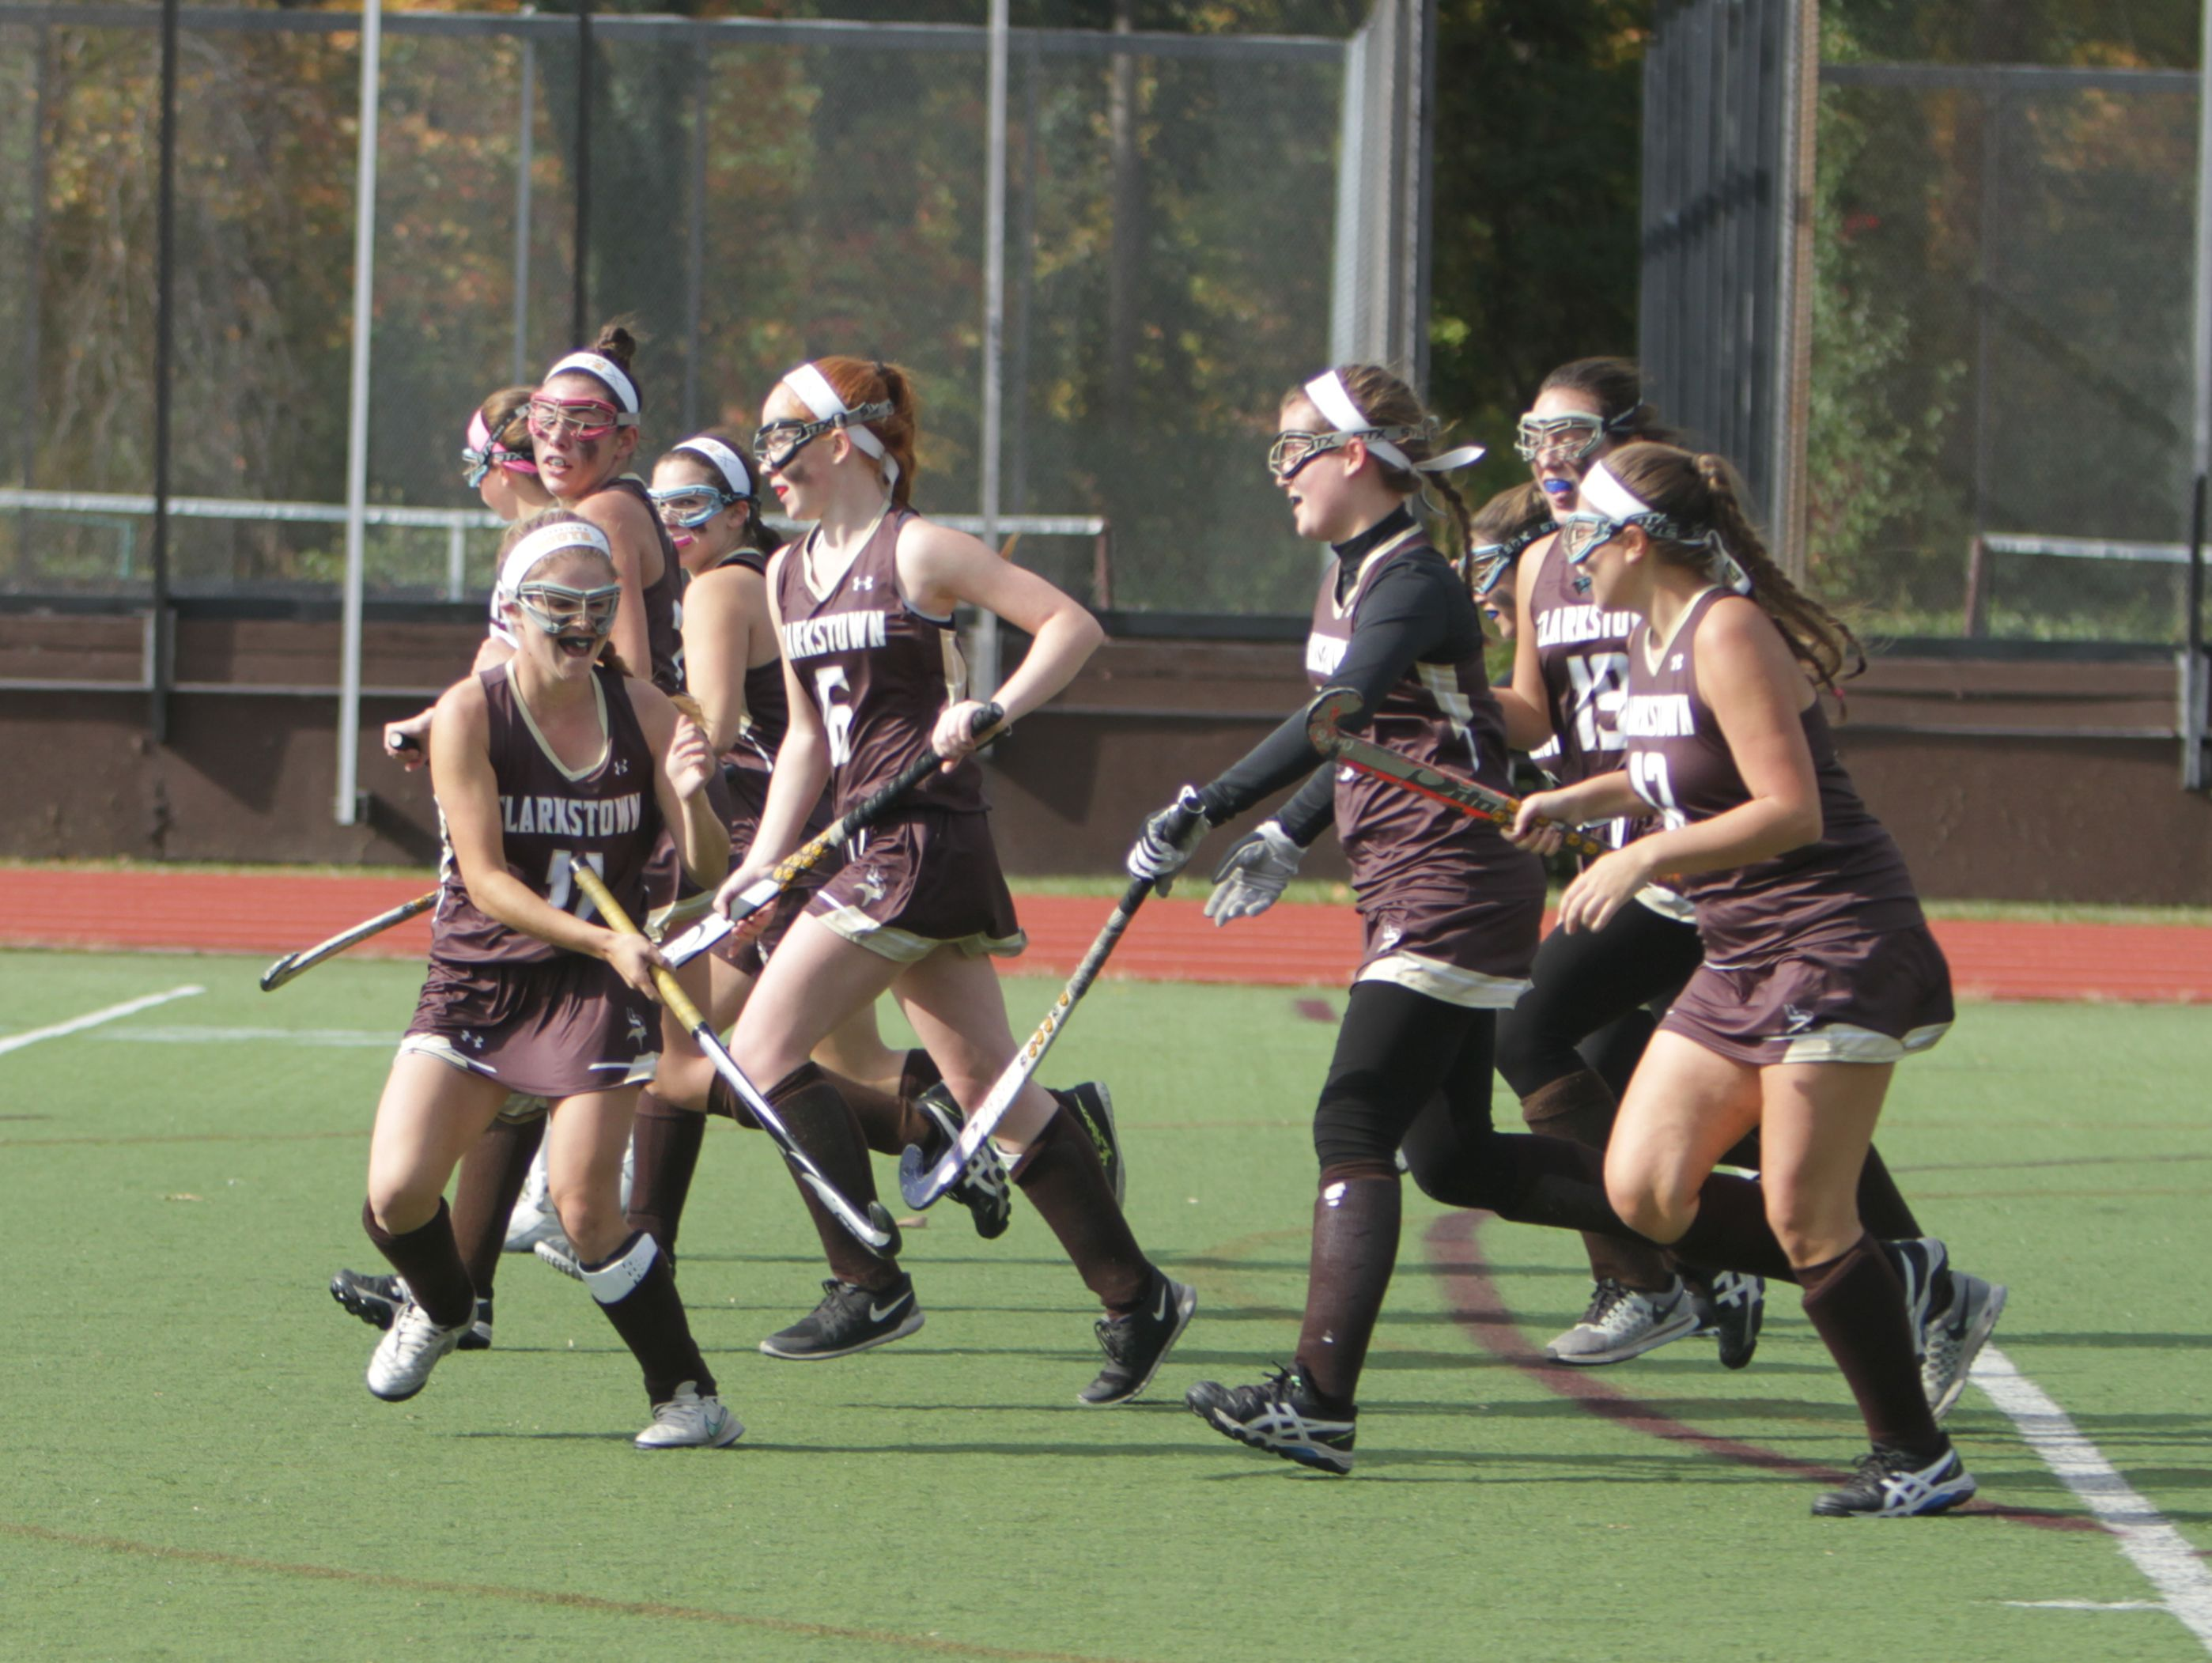 Clarkstown South celebrates after a goal from Jenna Rogers ties the game 1-1 during the first half of a Section 1, Class A field hockey semifinal game between Scarsdale and Clarkstown South at Scarsdale High School on Saturday, Oct. 29, 2016. Scarsdale won 7-1.